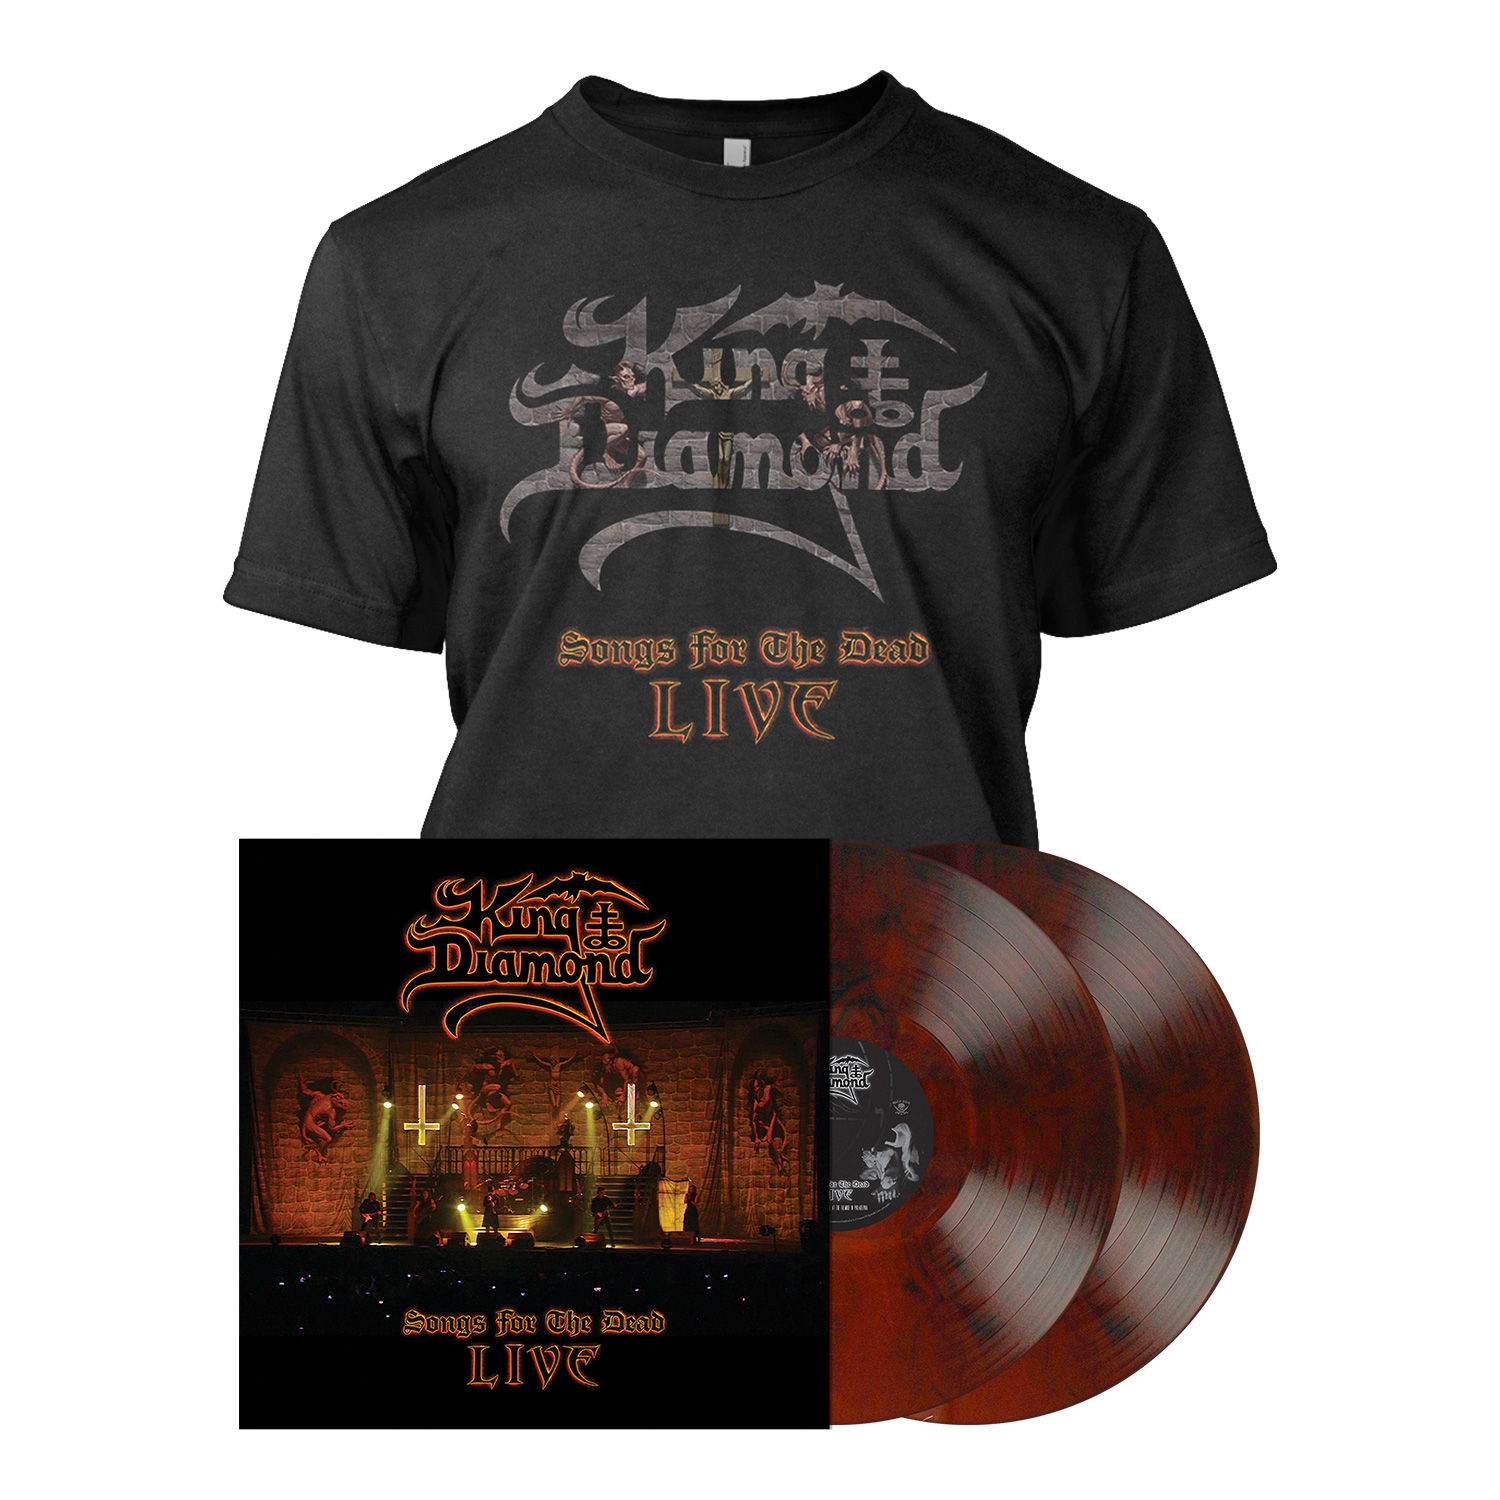 Songs for the Dead Live - LP Bundle - Root Beer